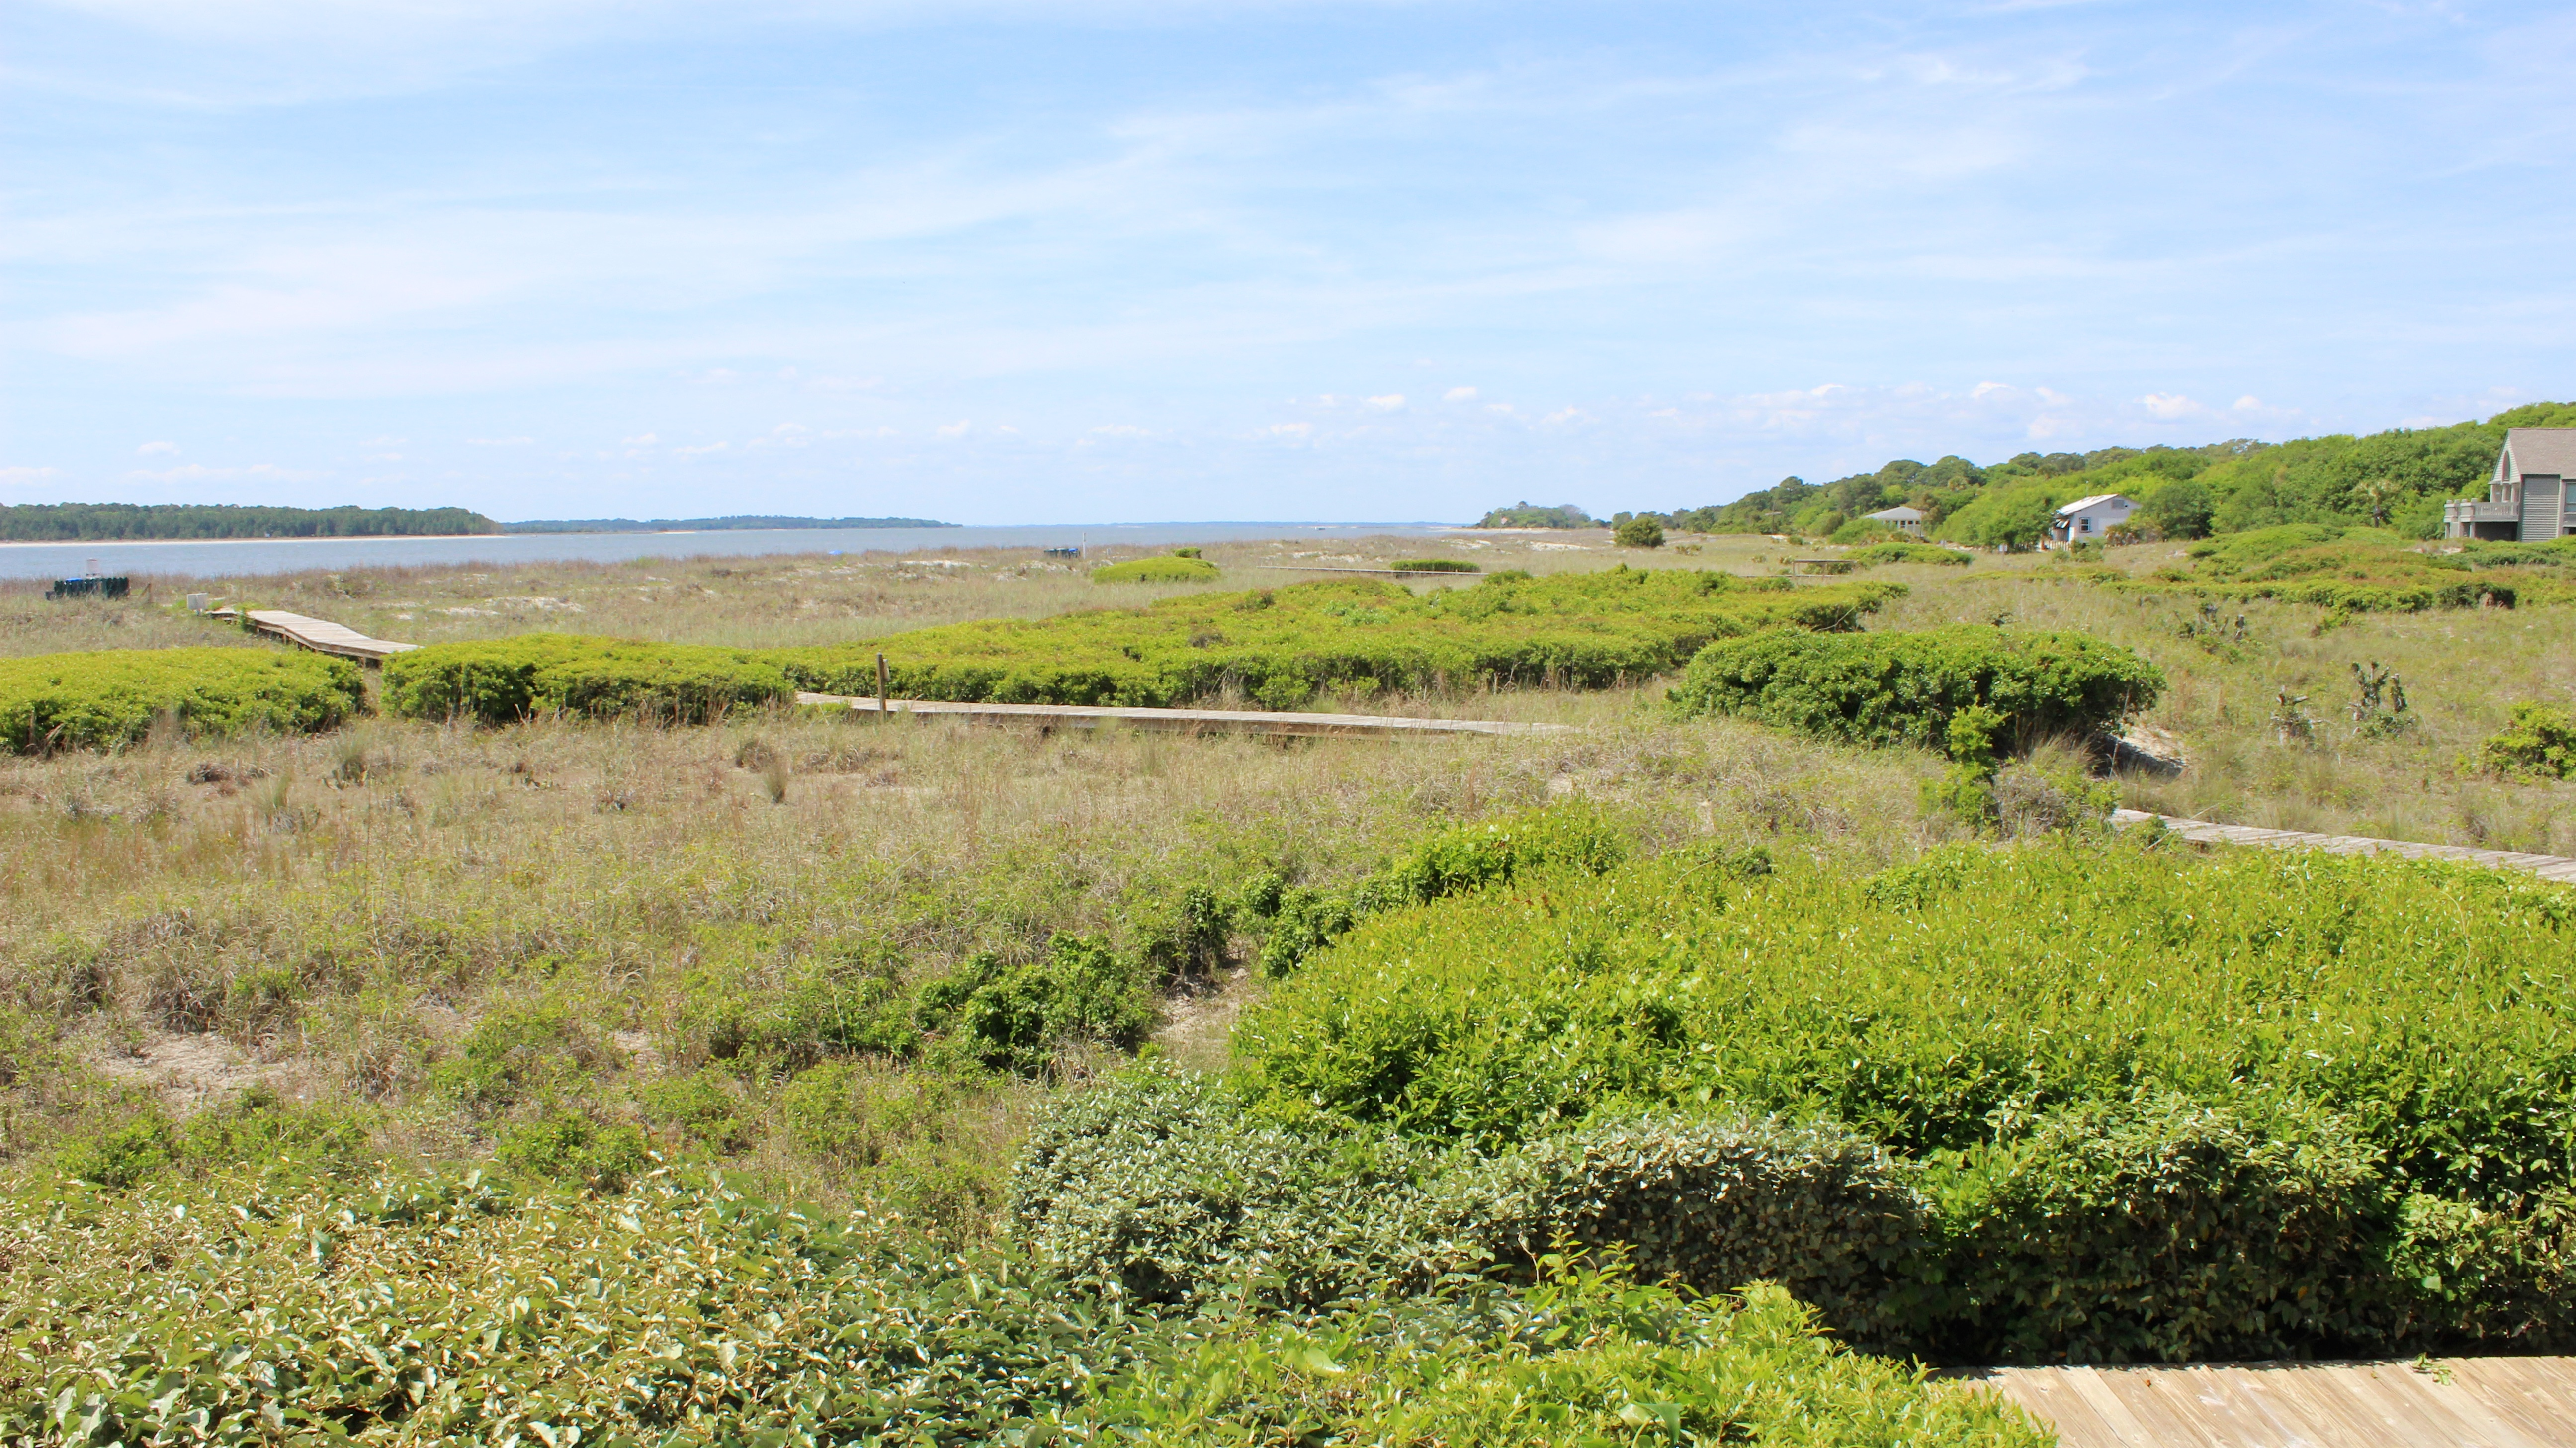 Watch the wildlife and birds wander through the protected dunes.